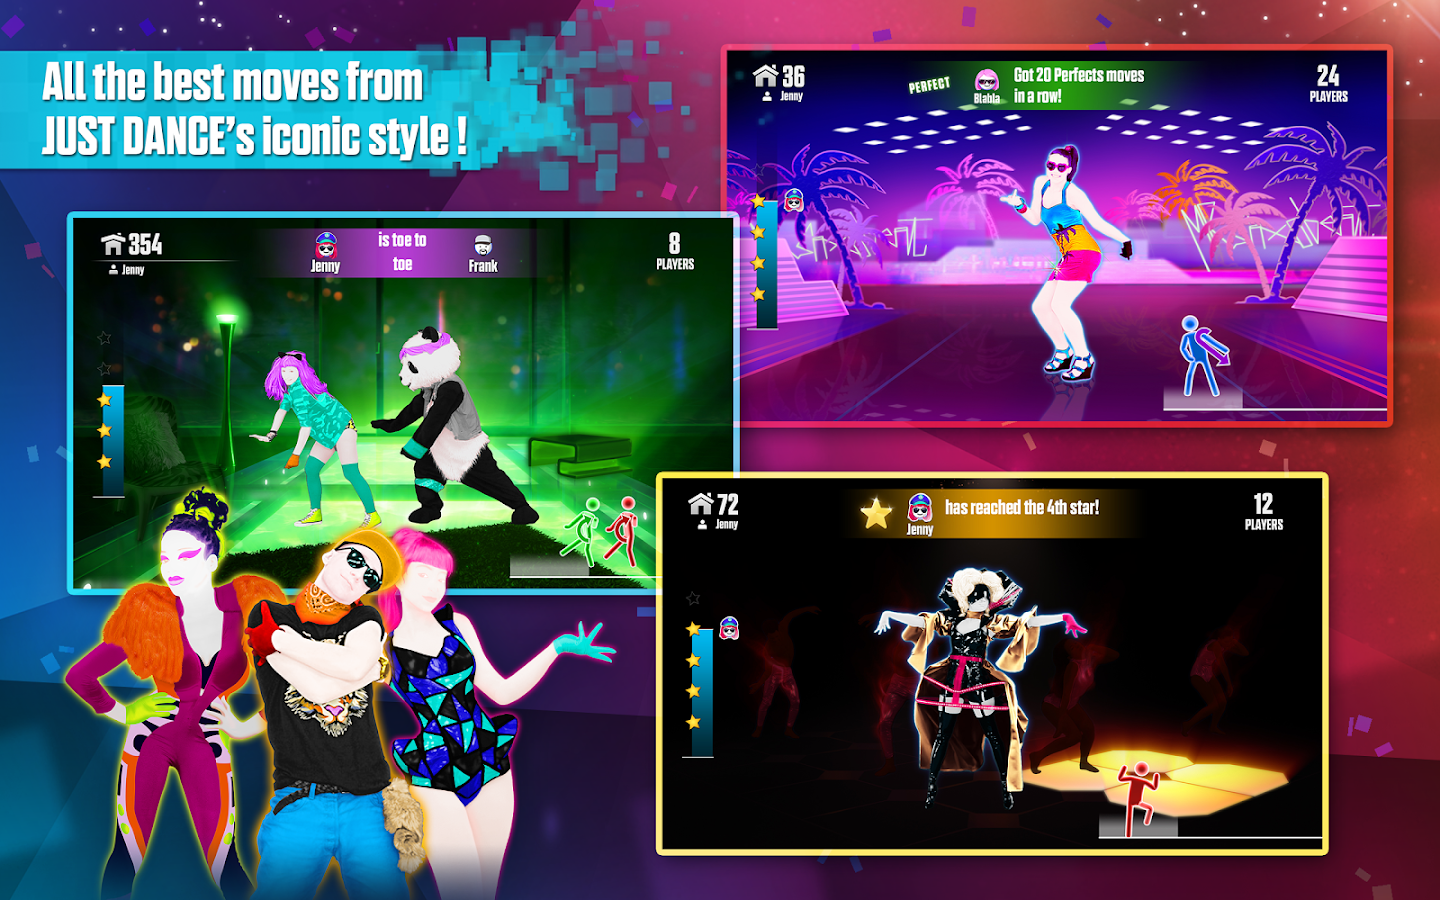 how to dance with just dance now on phone